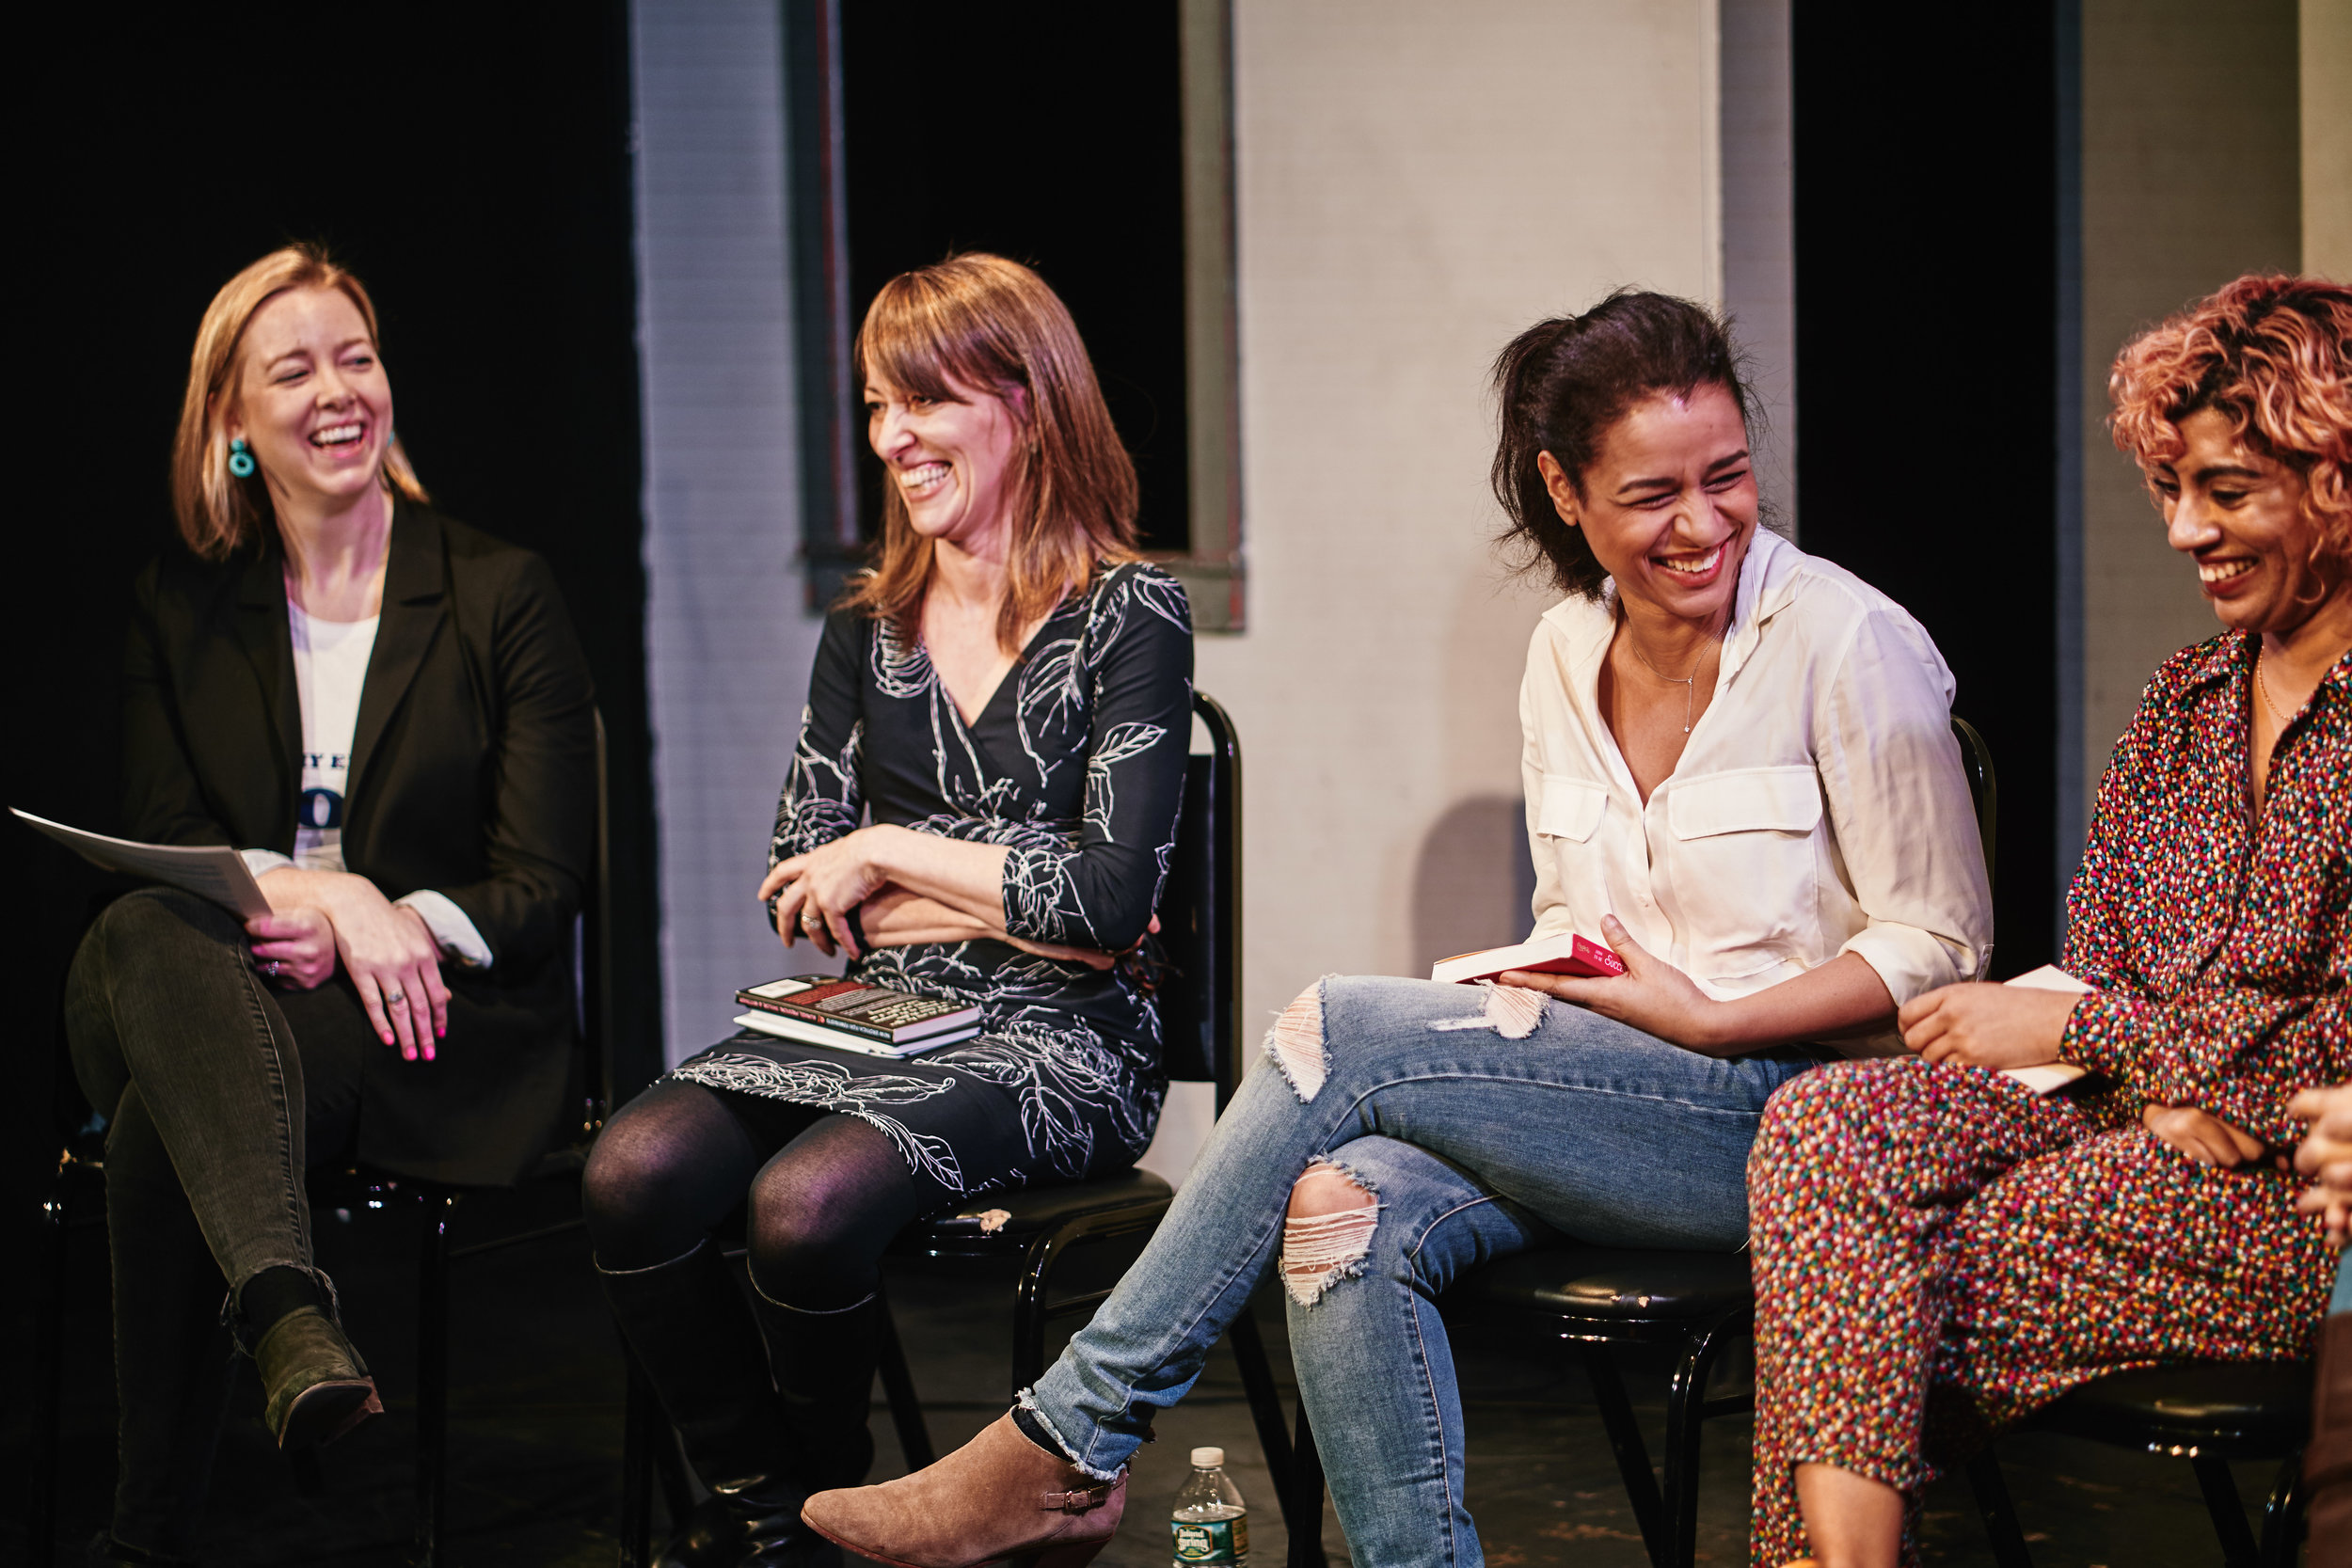 Moderator and Festival Co-Founder Caitlin Kunkel laughs with 2019 book panelists Susan Raihofer, Sarah Cooper, and Arti Gollapudi.